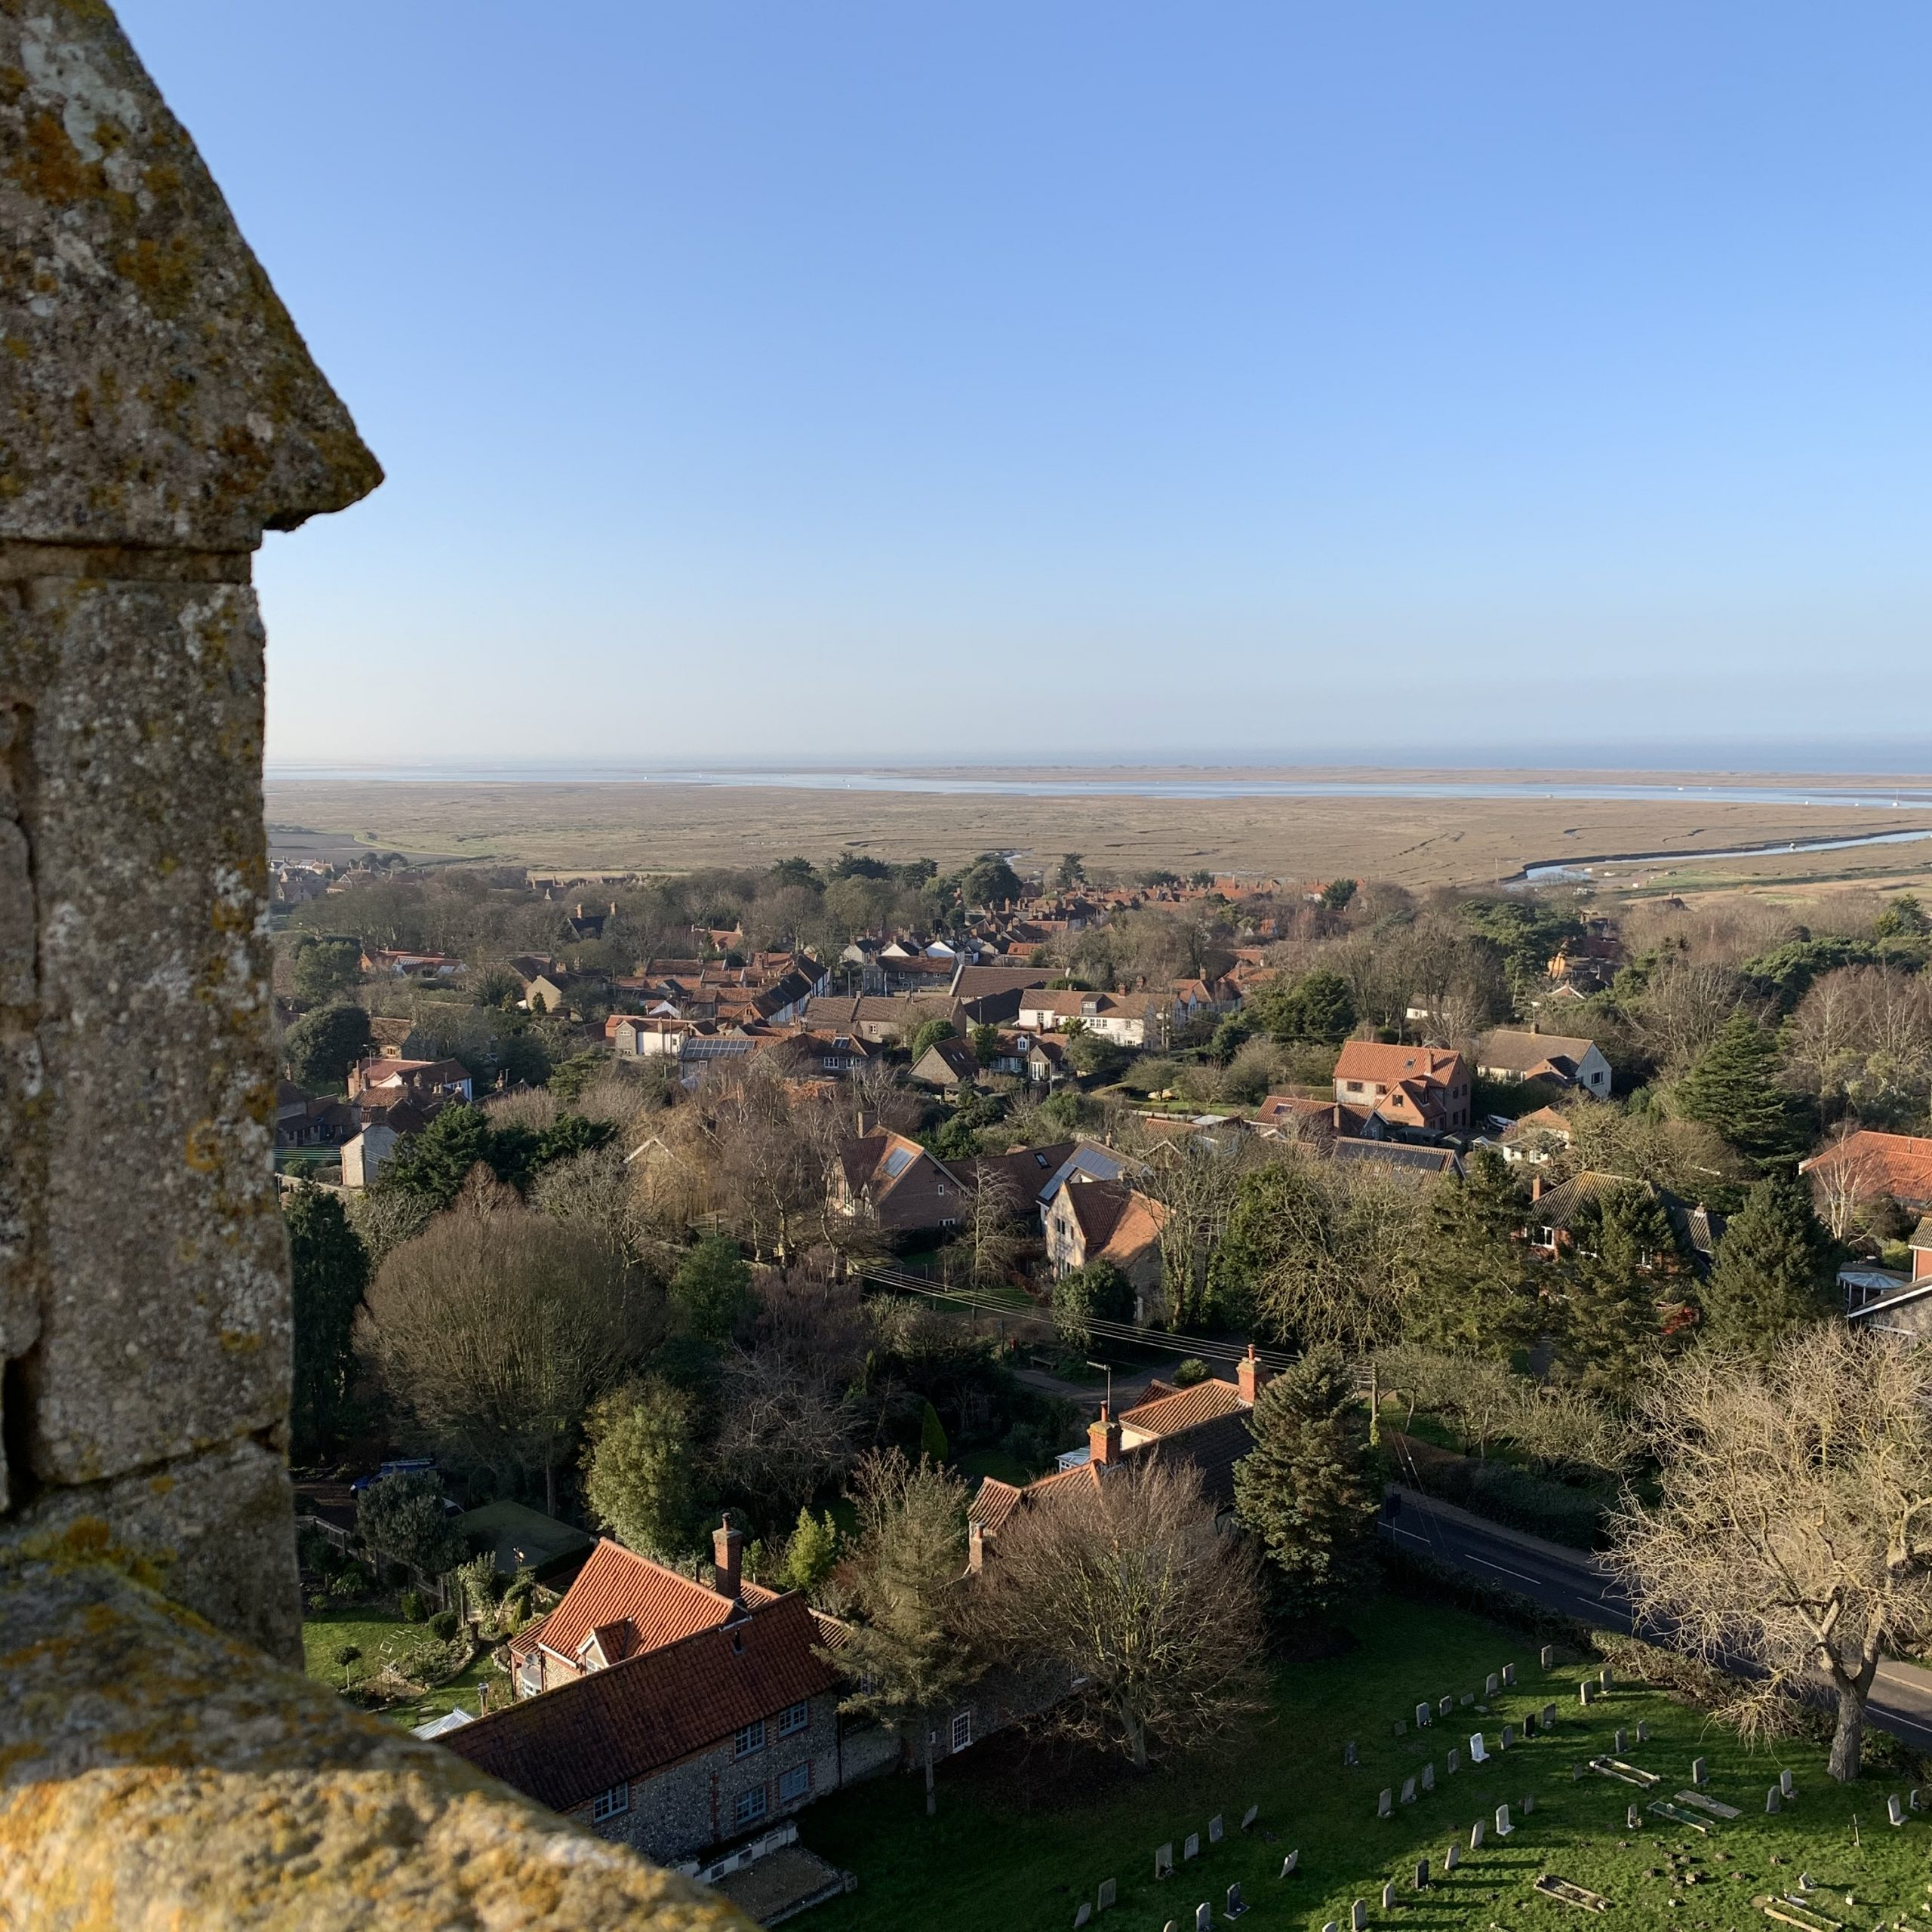 The view from Blakeney church tower